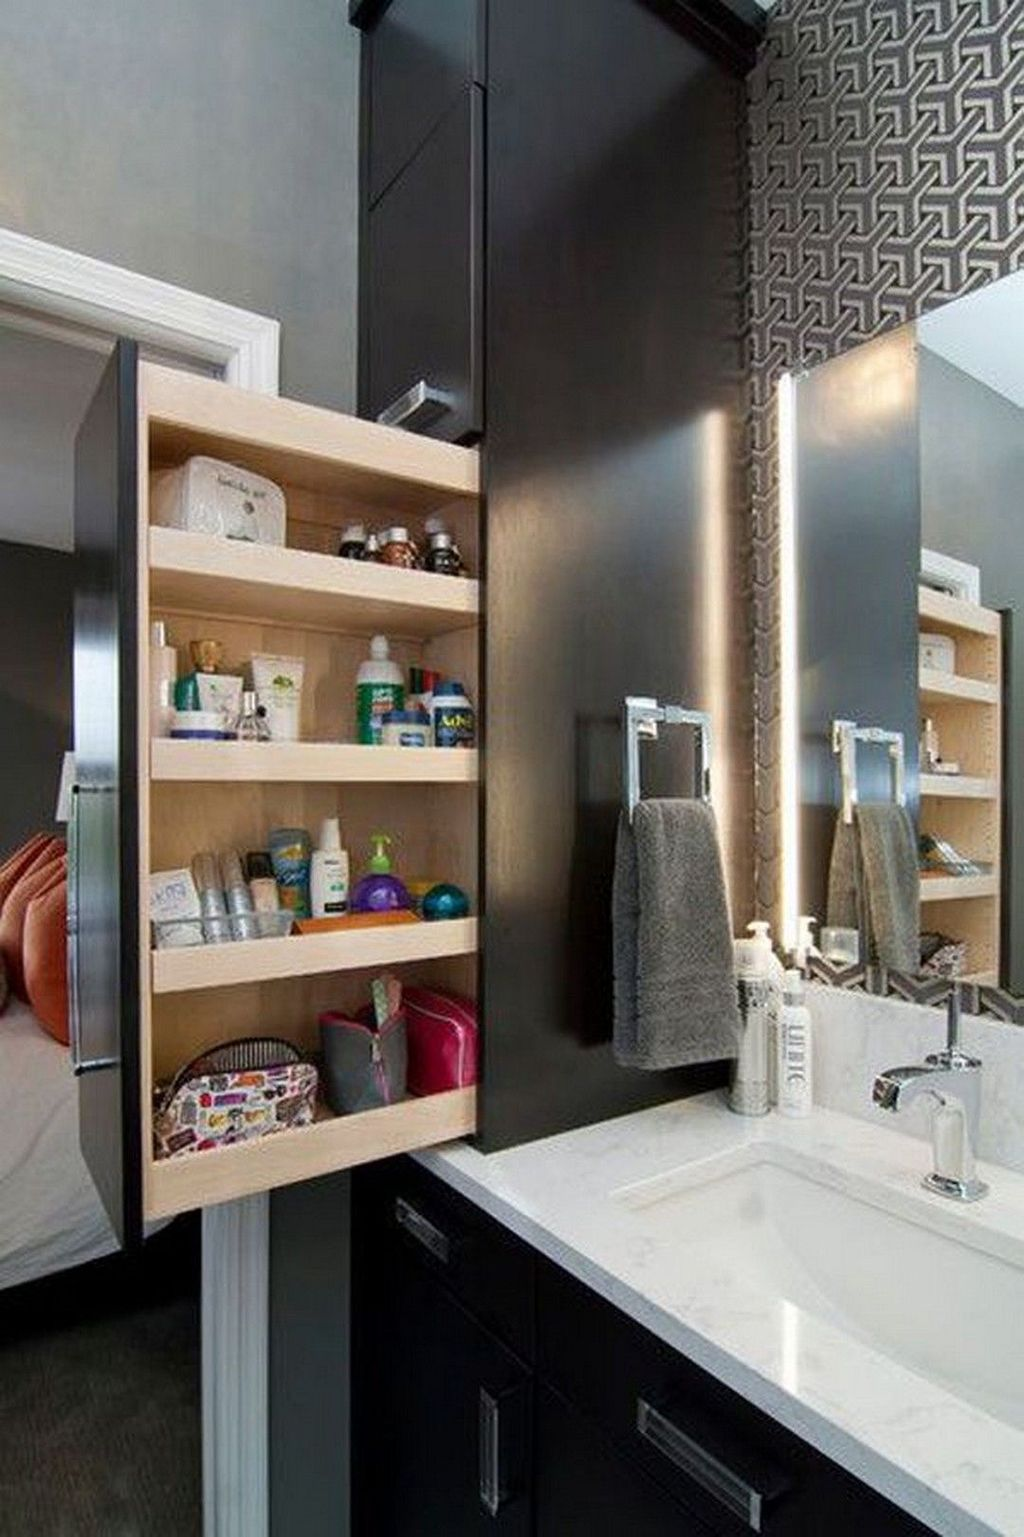 Amazing Bathroom Storage Design Ideas For Small Space 01